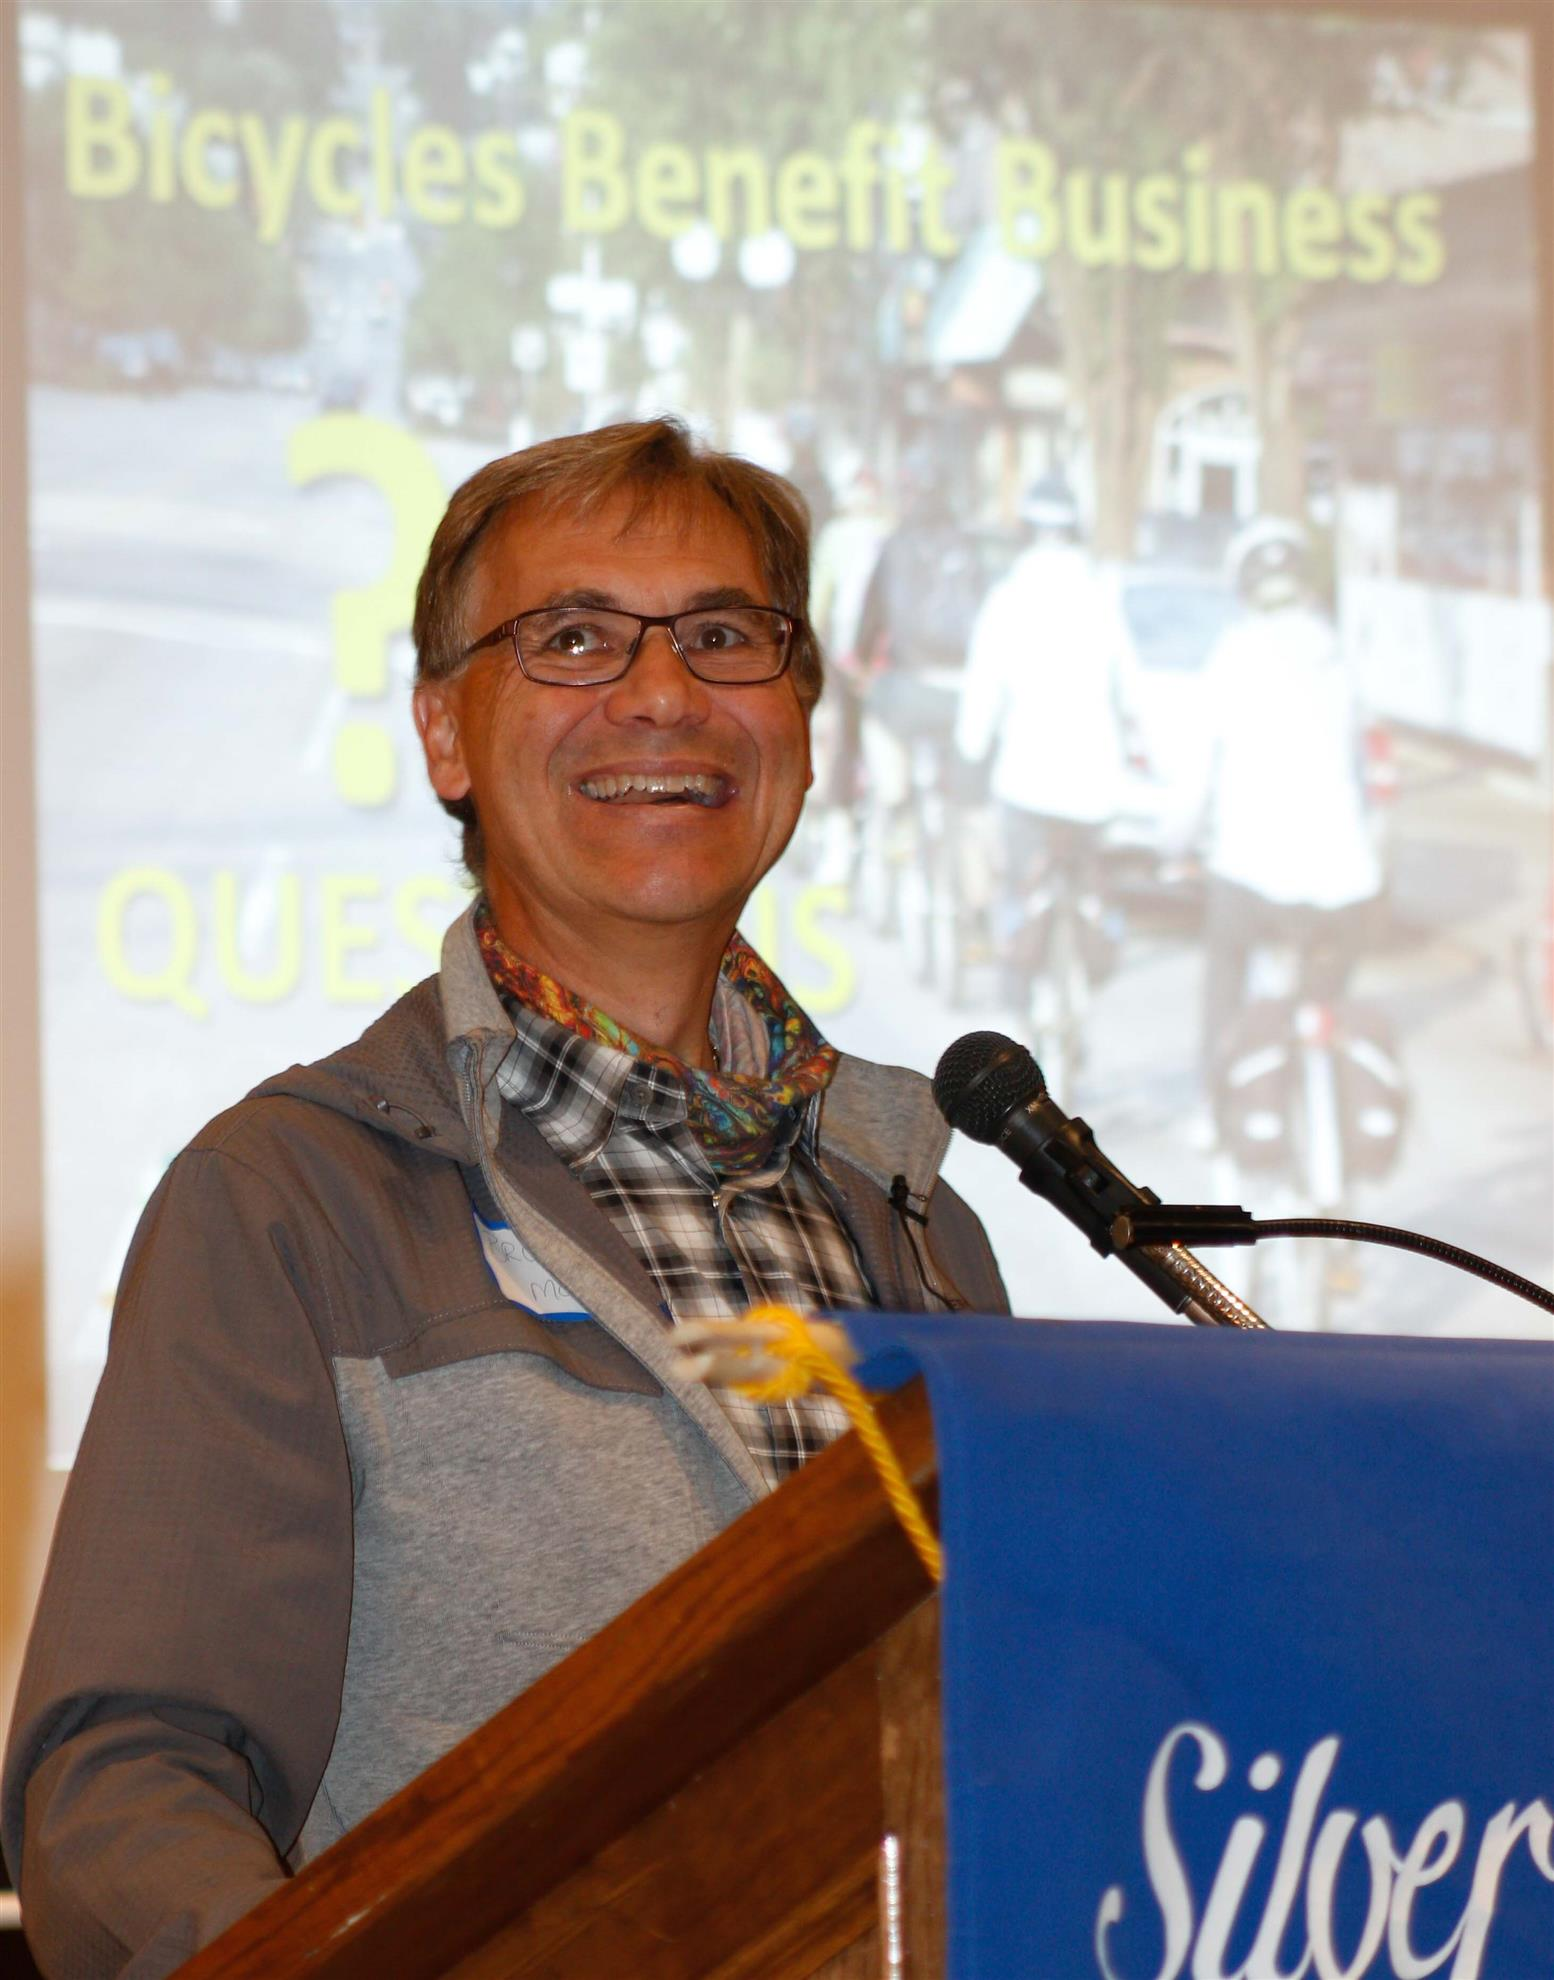 Bicycles Benefit Business